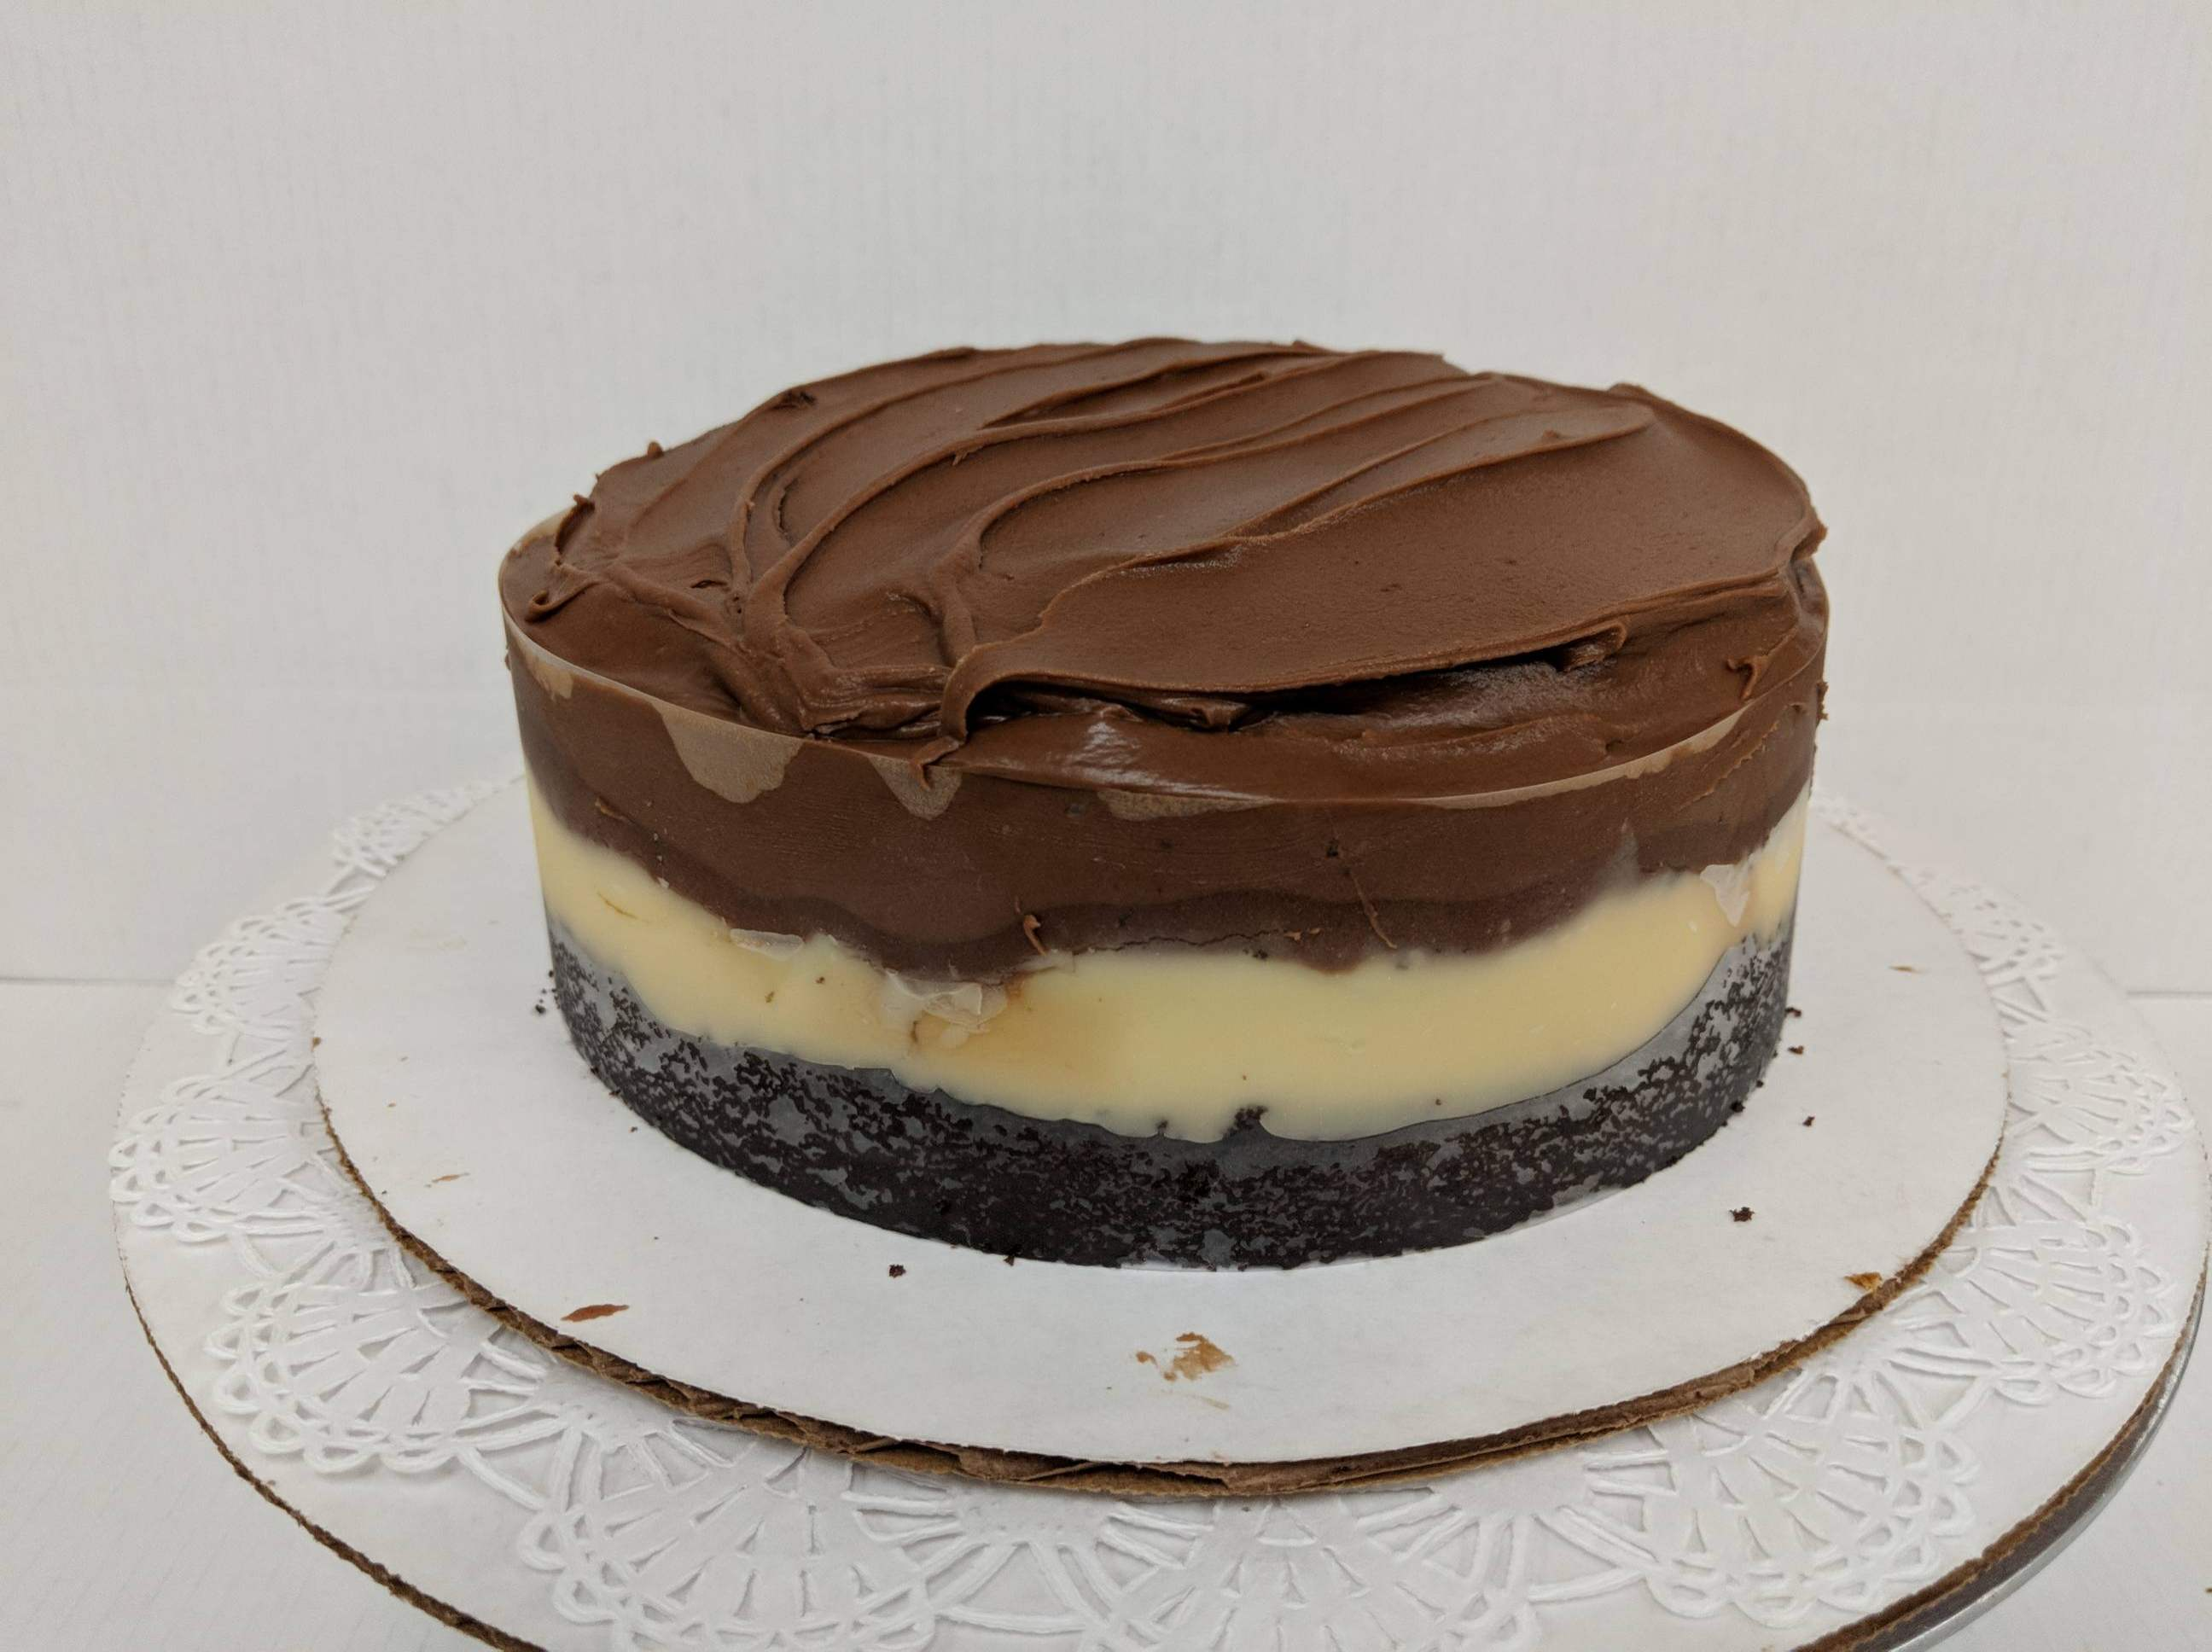 Dbl Choc Boston Cream